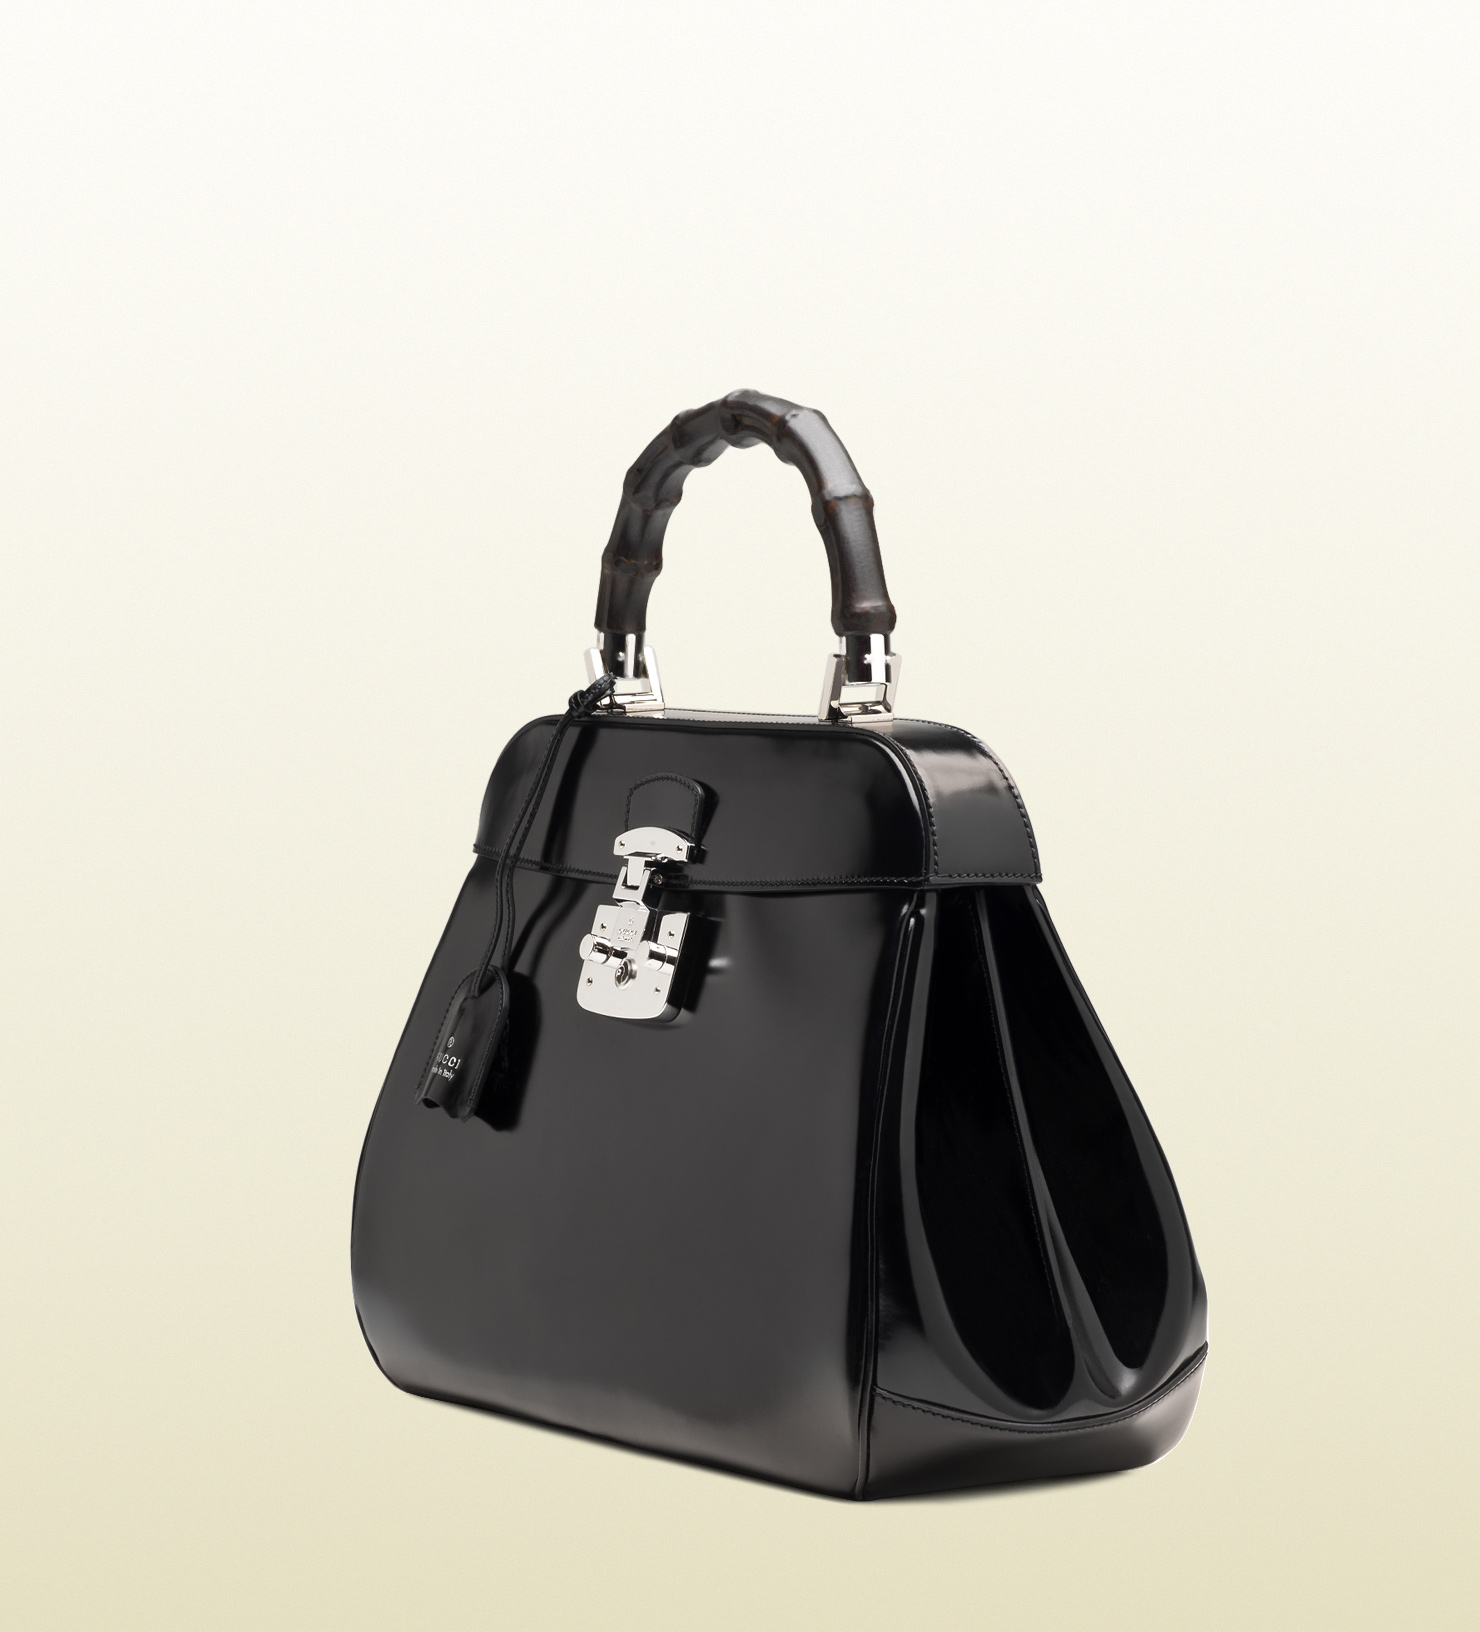 1440dfd14d1 Lyst - Gucci Lady Lock Leather Tote in Black